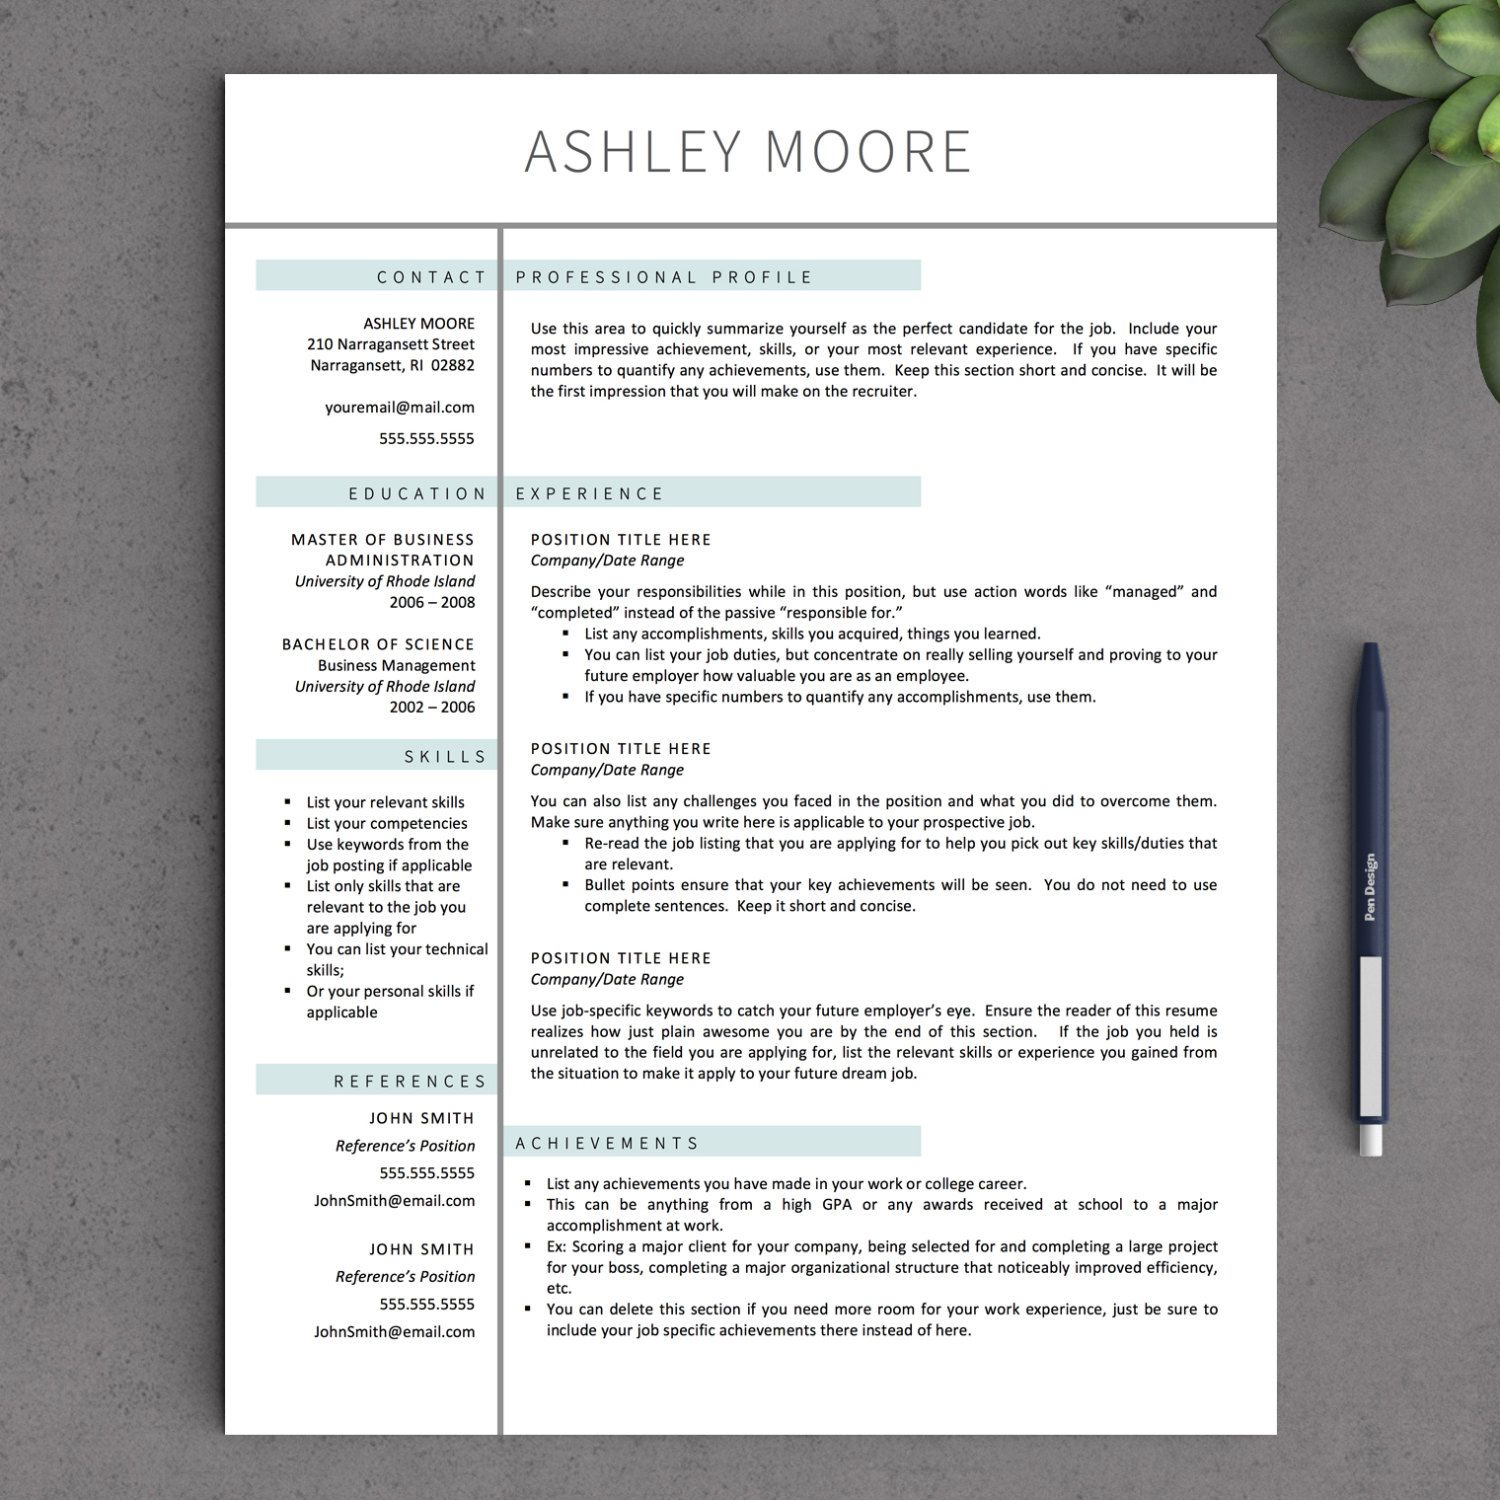 apple pages resume template download word free 2018 basic format doc volunteer abroad sample